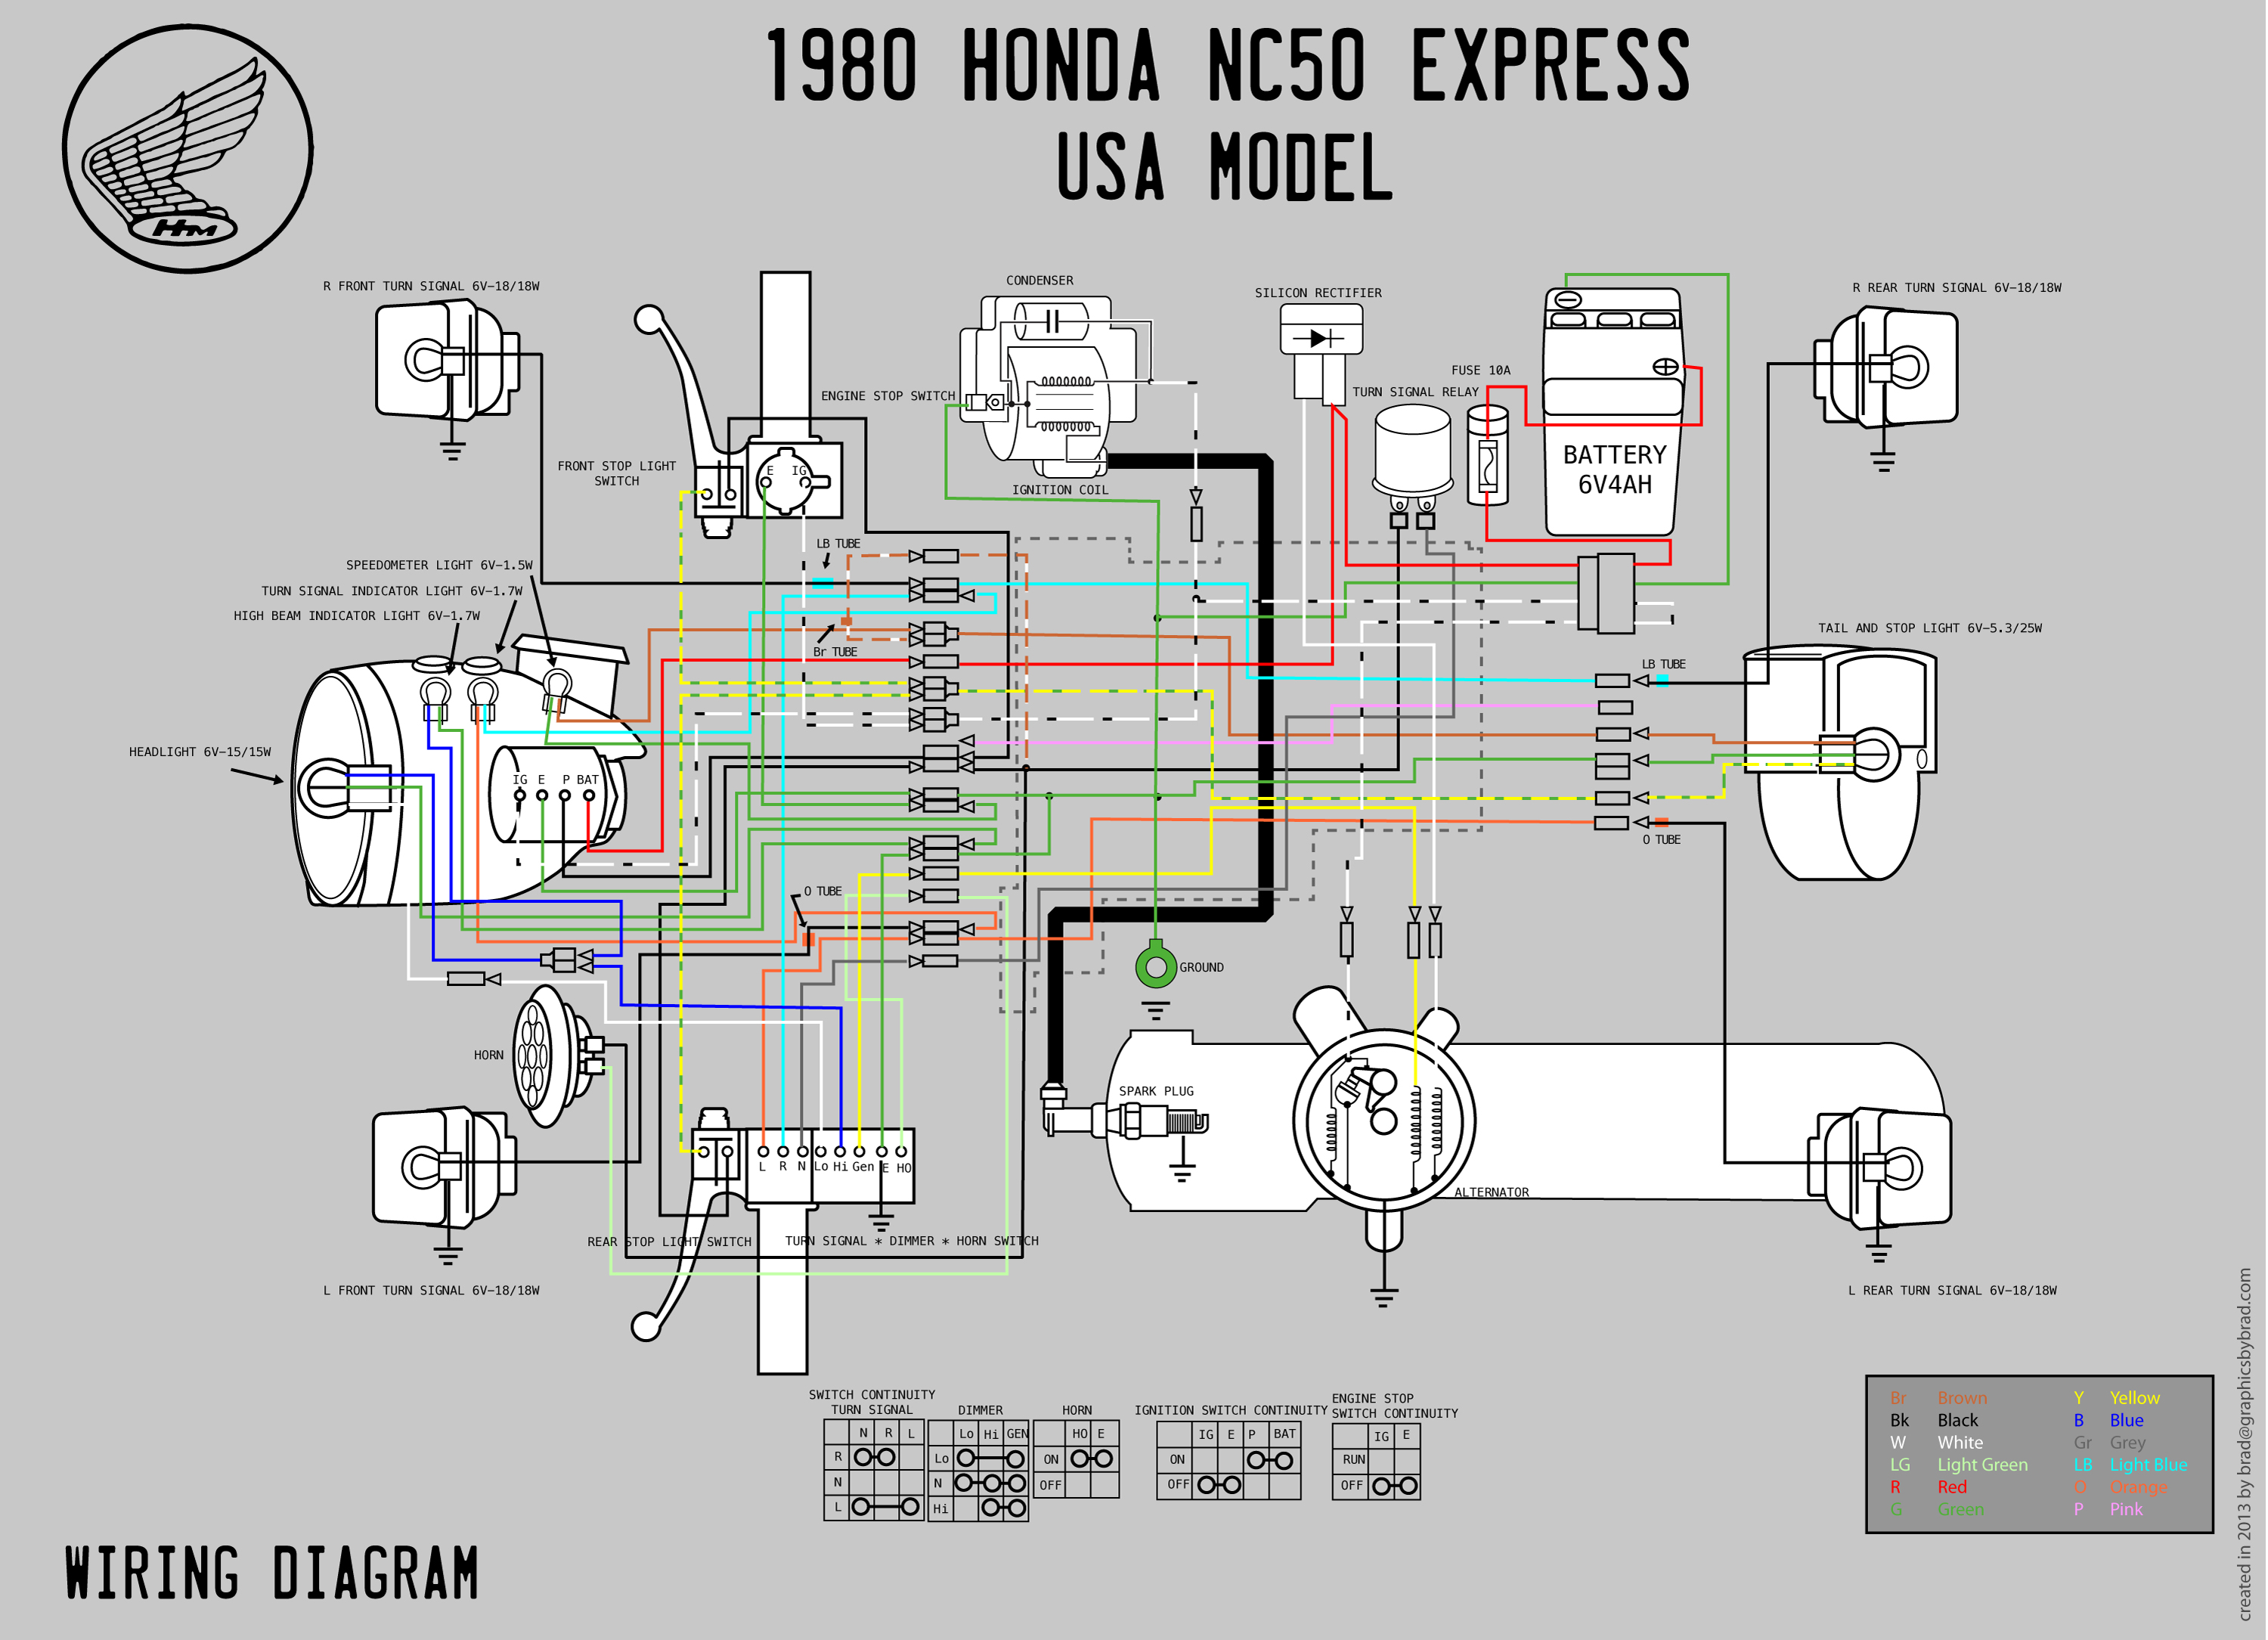 Honda Motor Scooters 49cc Wiring Opinions About Wiring Diagram \u2022 Honda  Fury Wiring Diagram Honda Spree Wiring Diagram